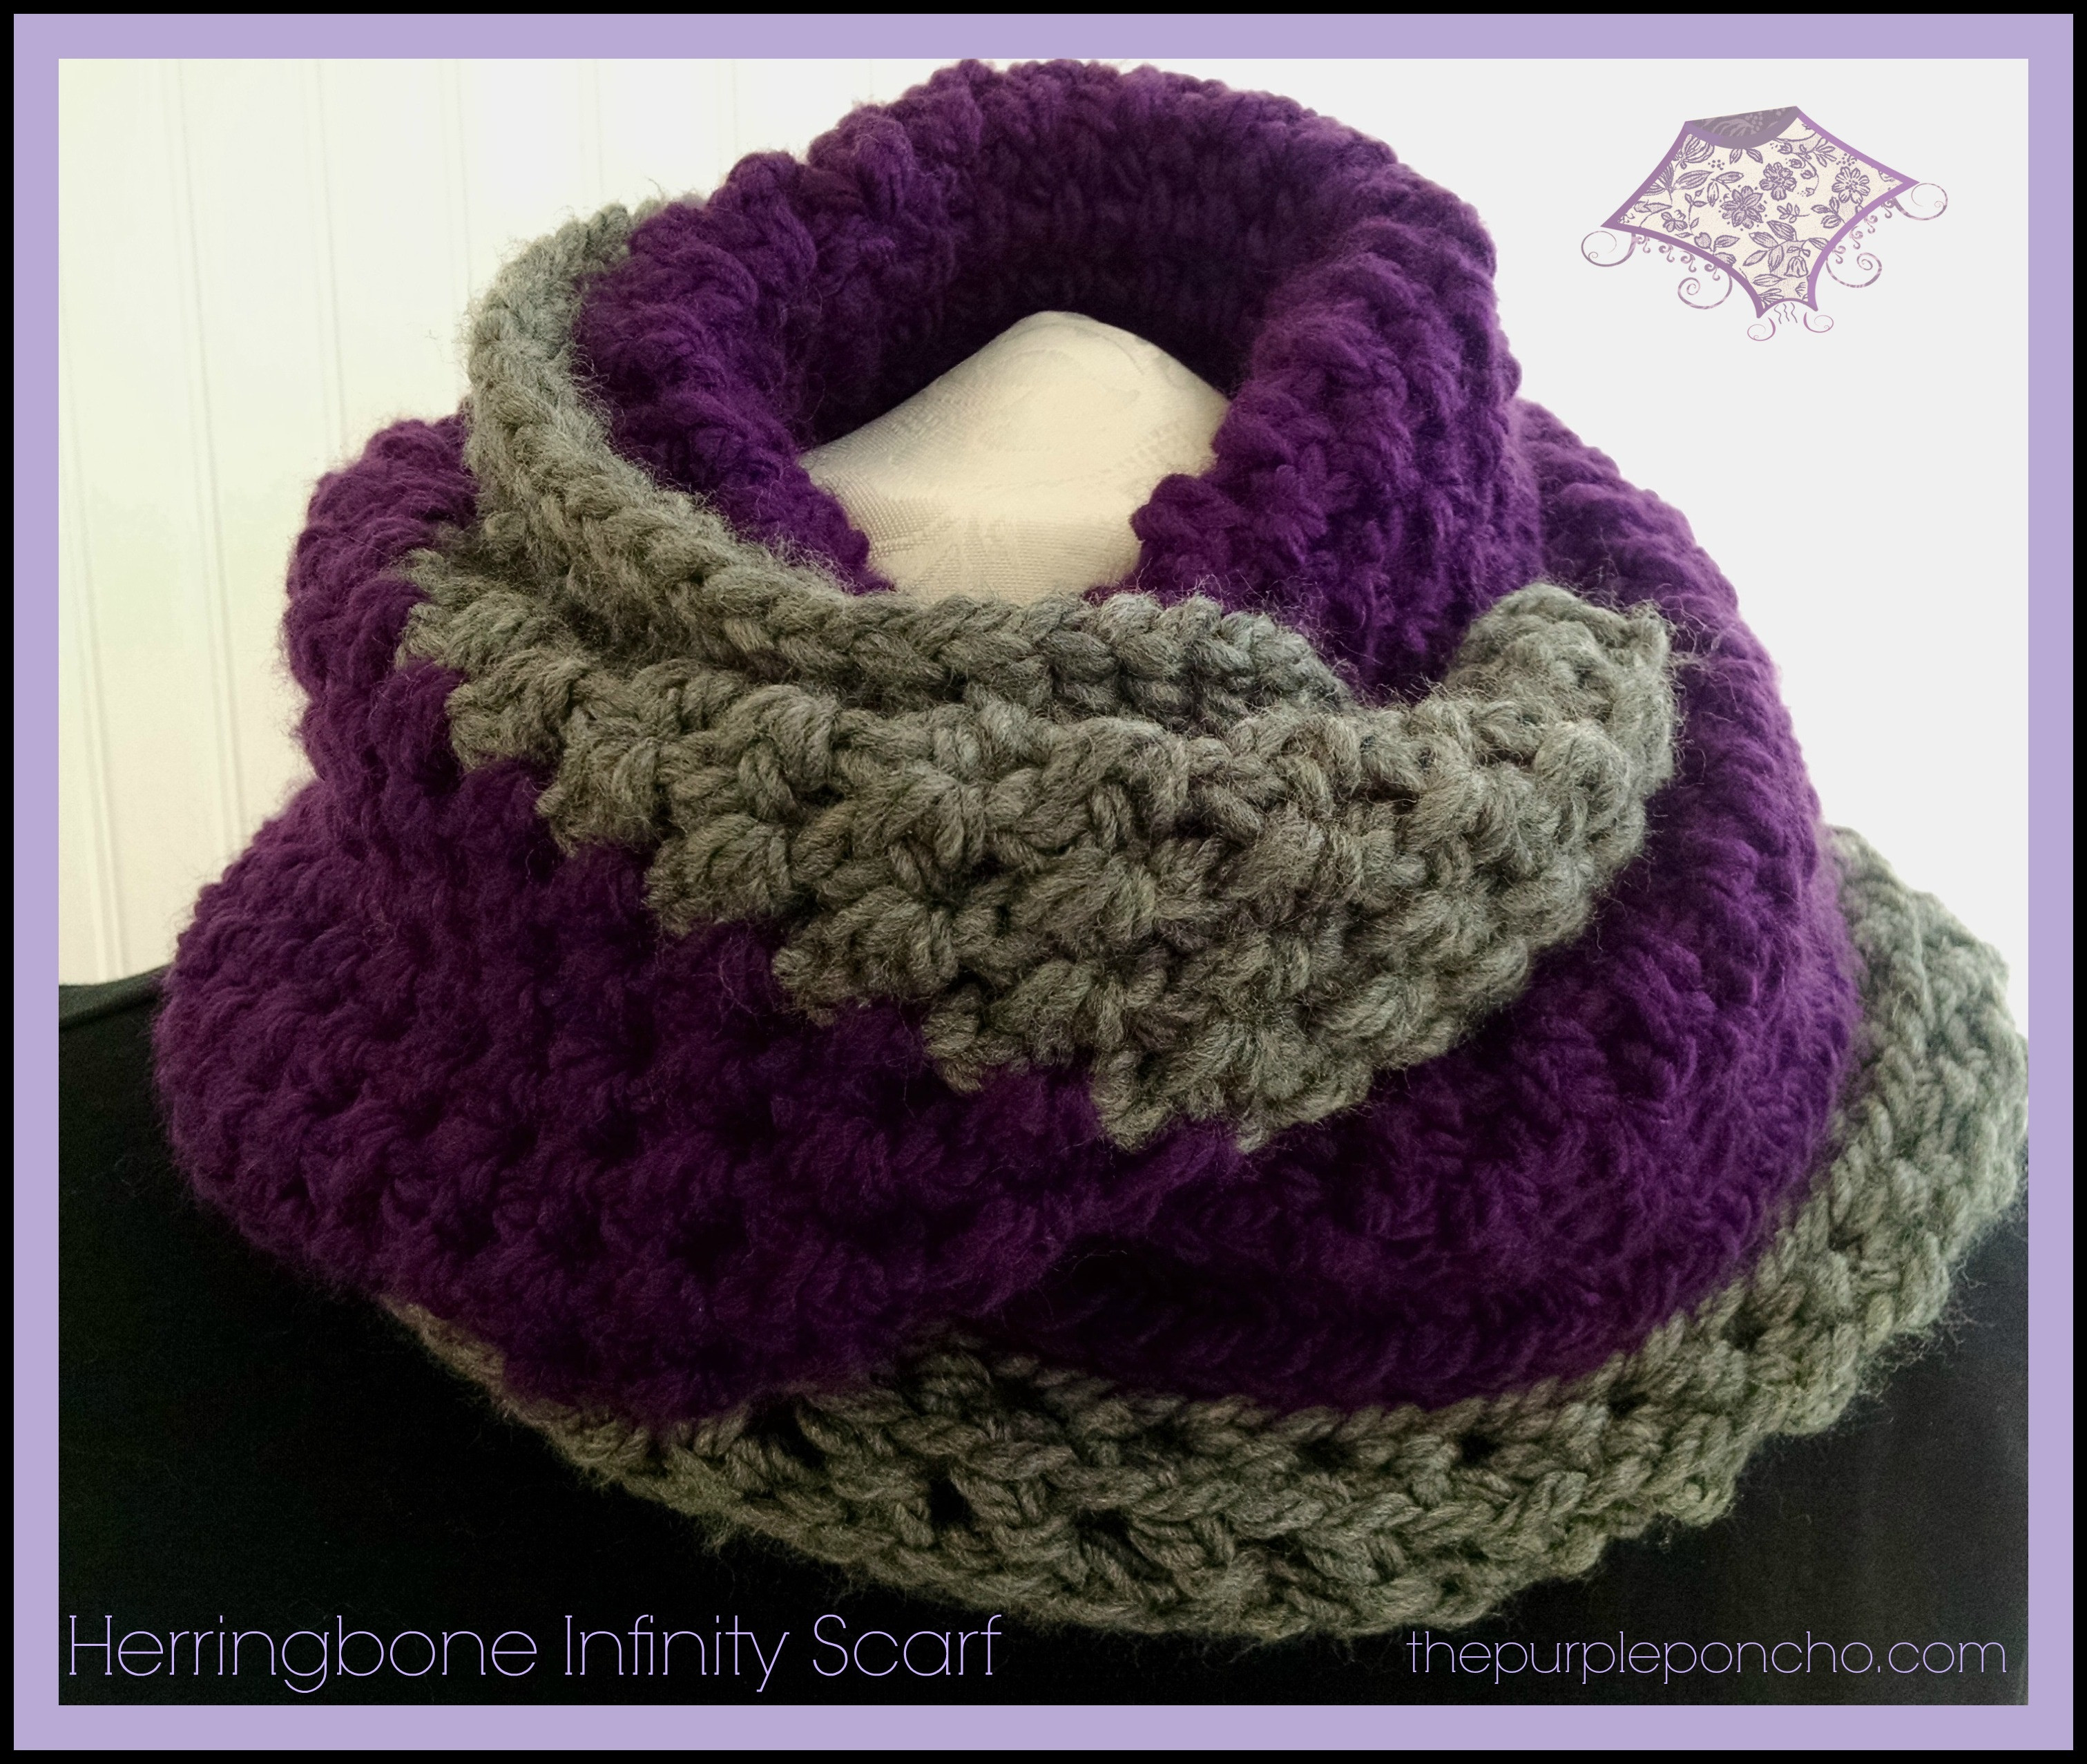 Crochet Infinity Scarves Lovely Herringbone Infinity Scarf A Free Crochet Pattern Of New 44 Photos Crochet Infinity Scarves